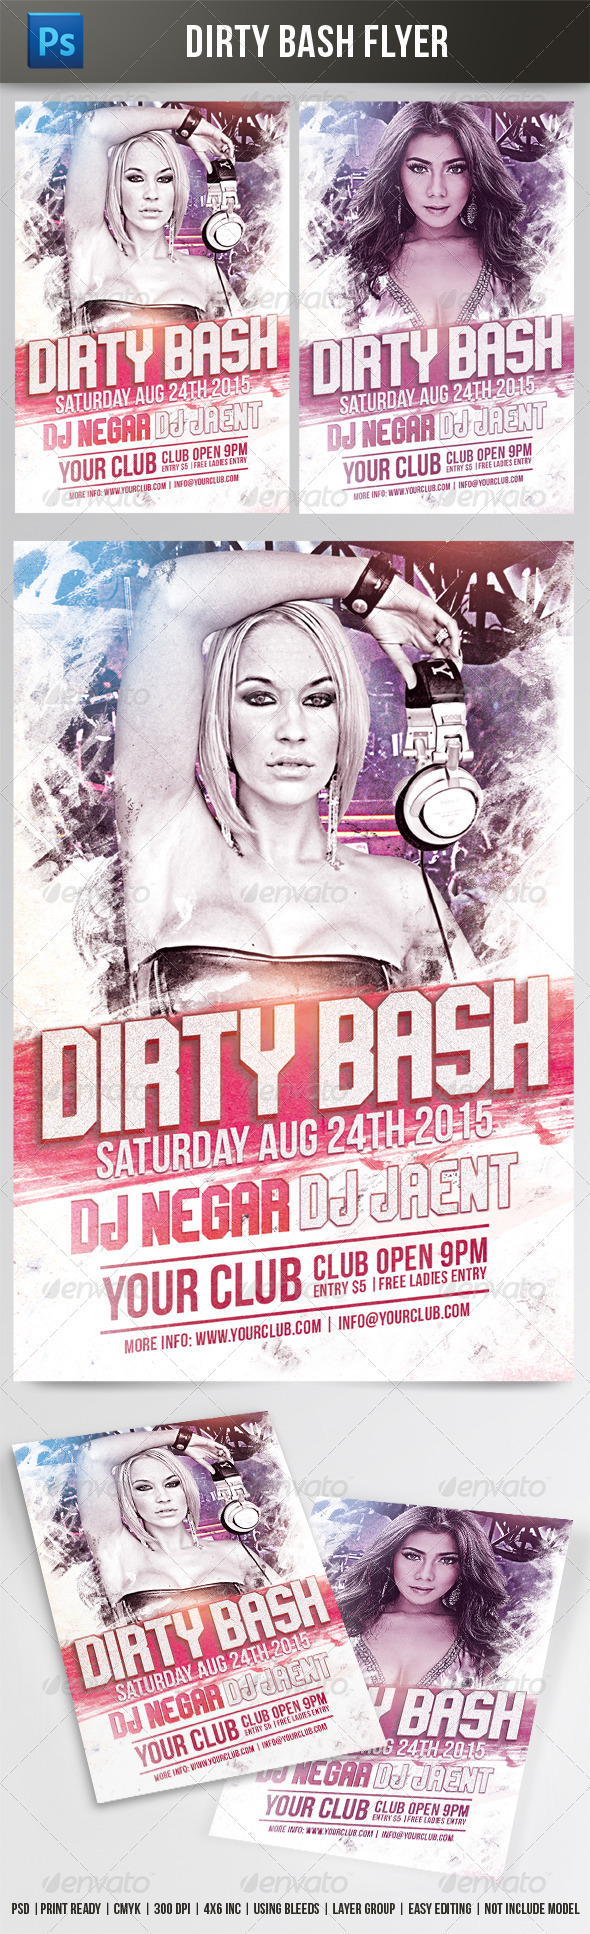 GraphicRiver Dirty Bash Flyer 7835536